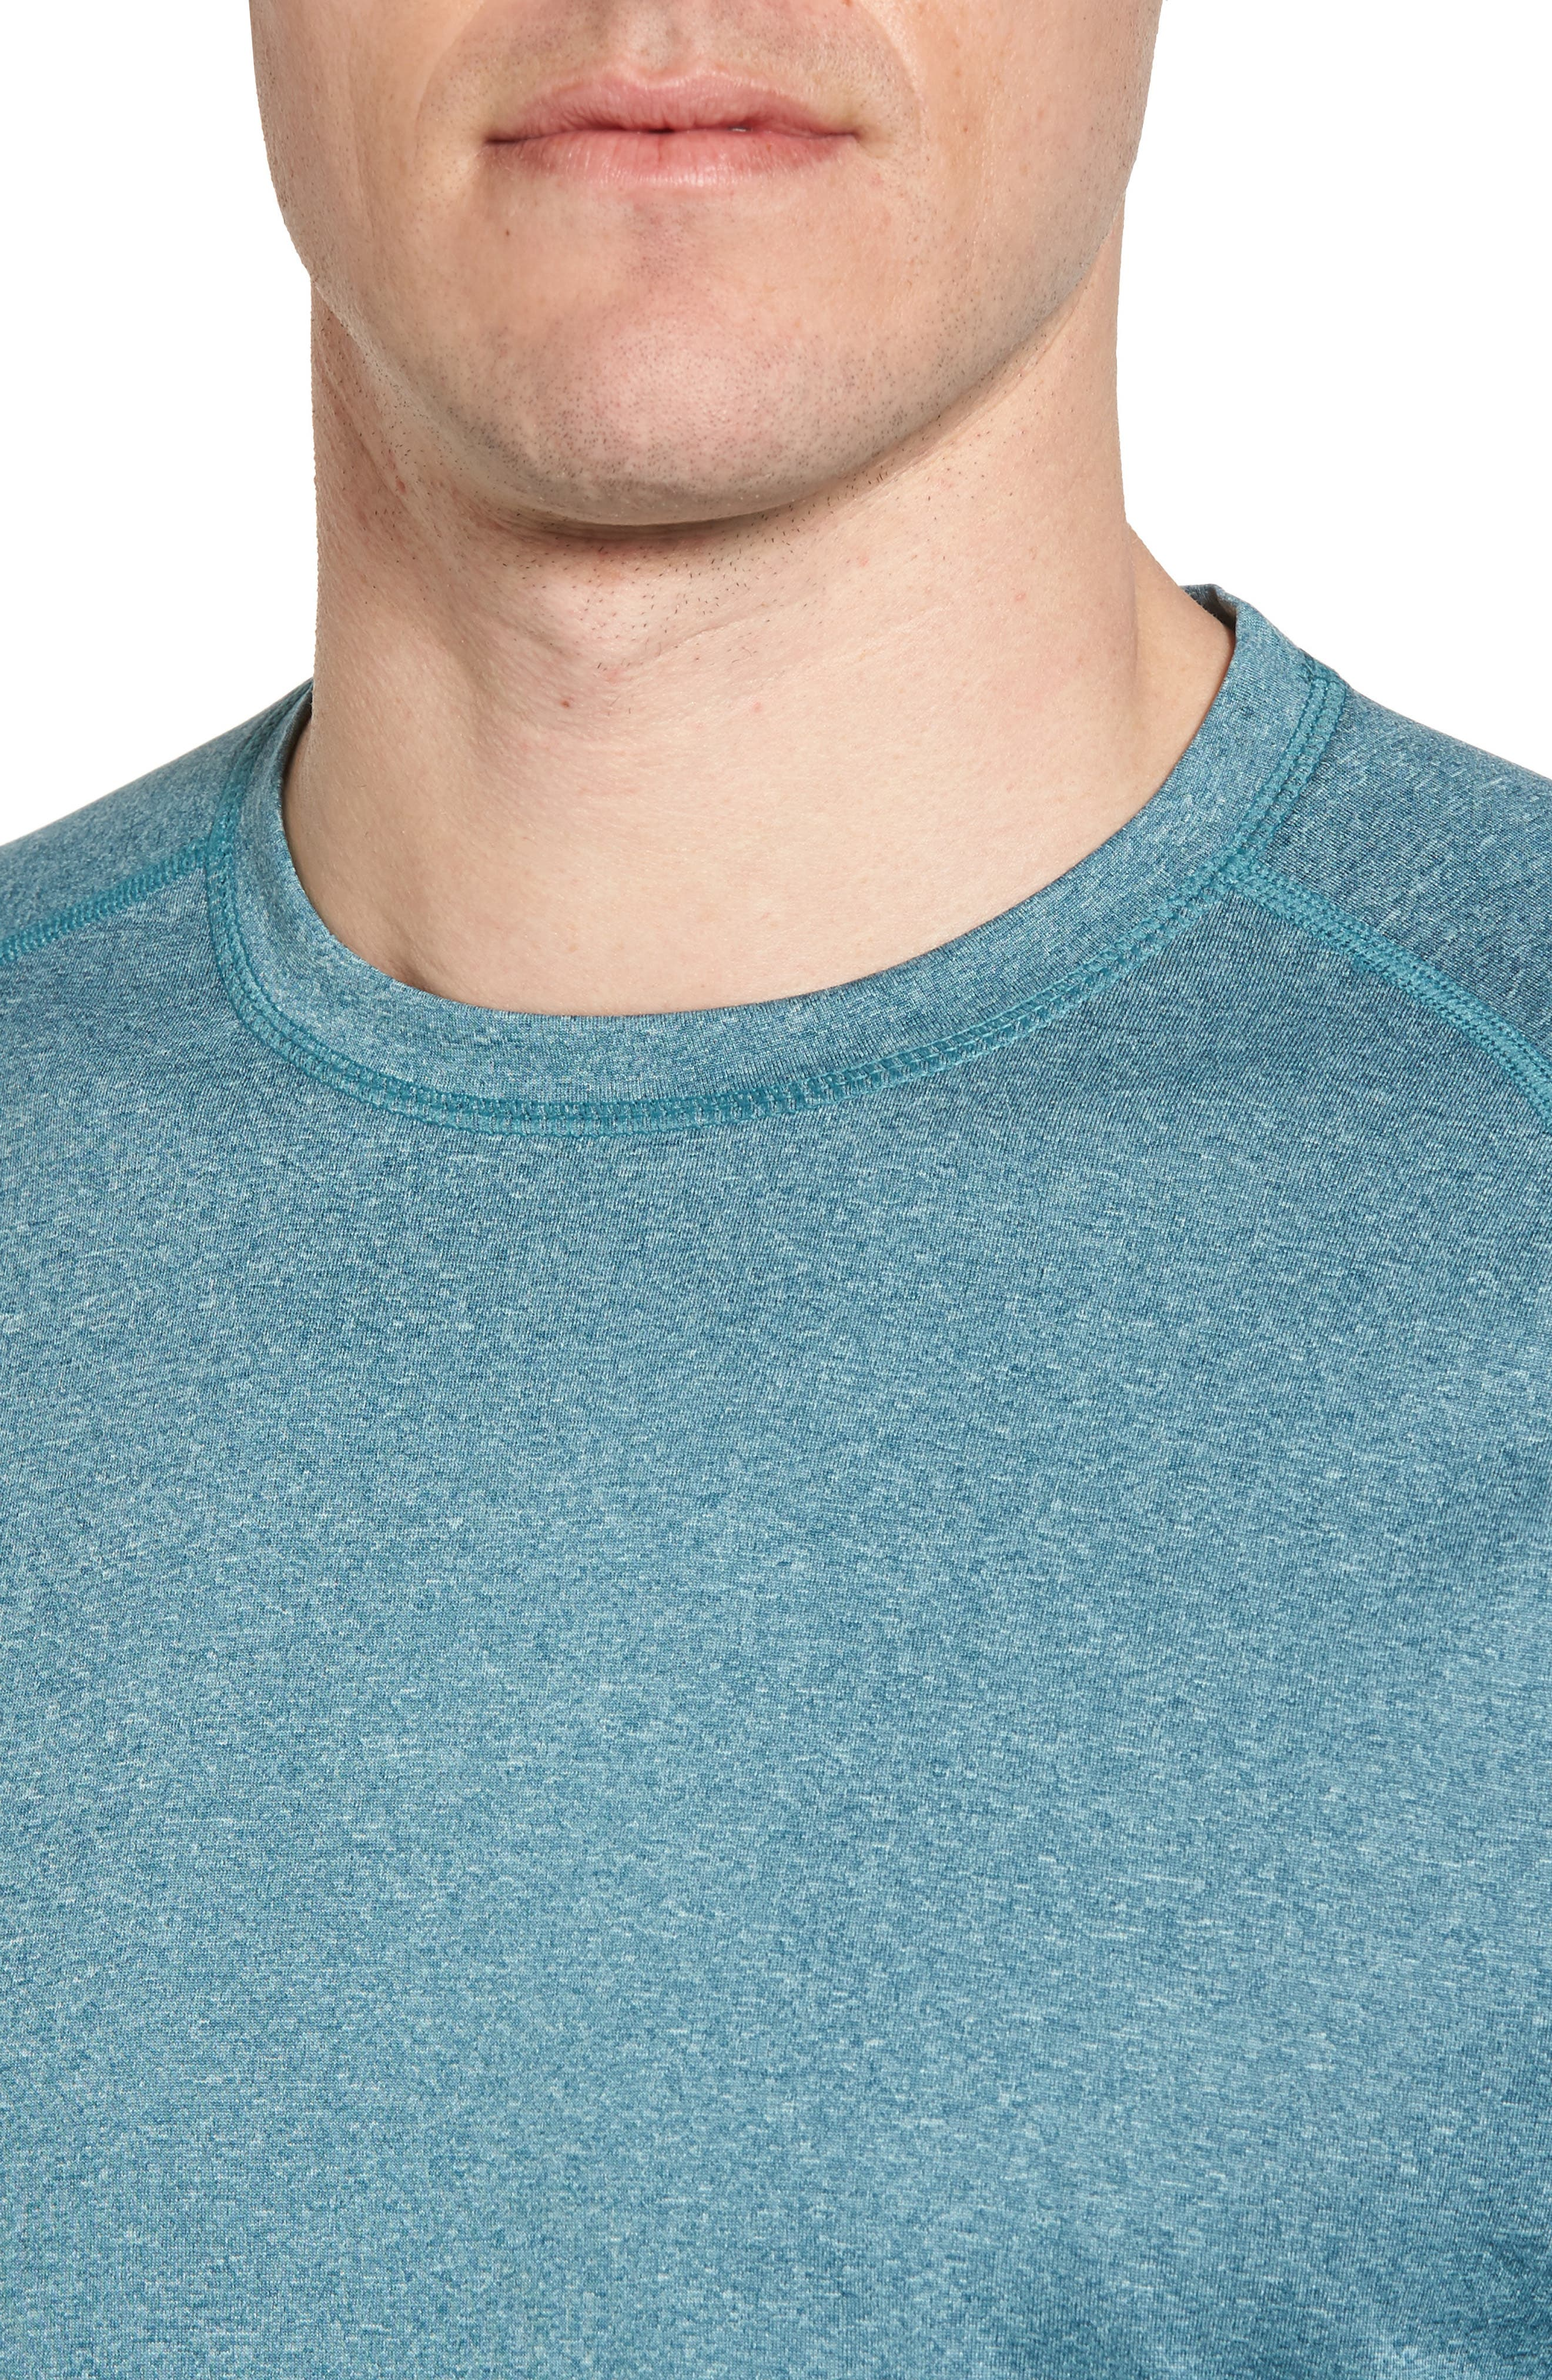 Jordanite Crewneck T-Shirt,                             Alternate thumbnail 4, color,                             Teal Tourmaline Melange